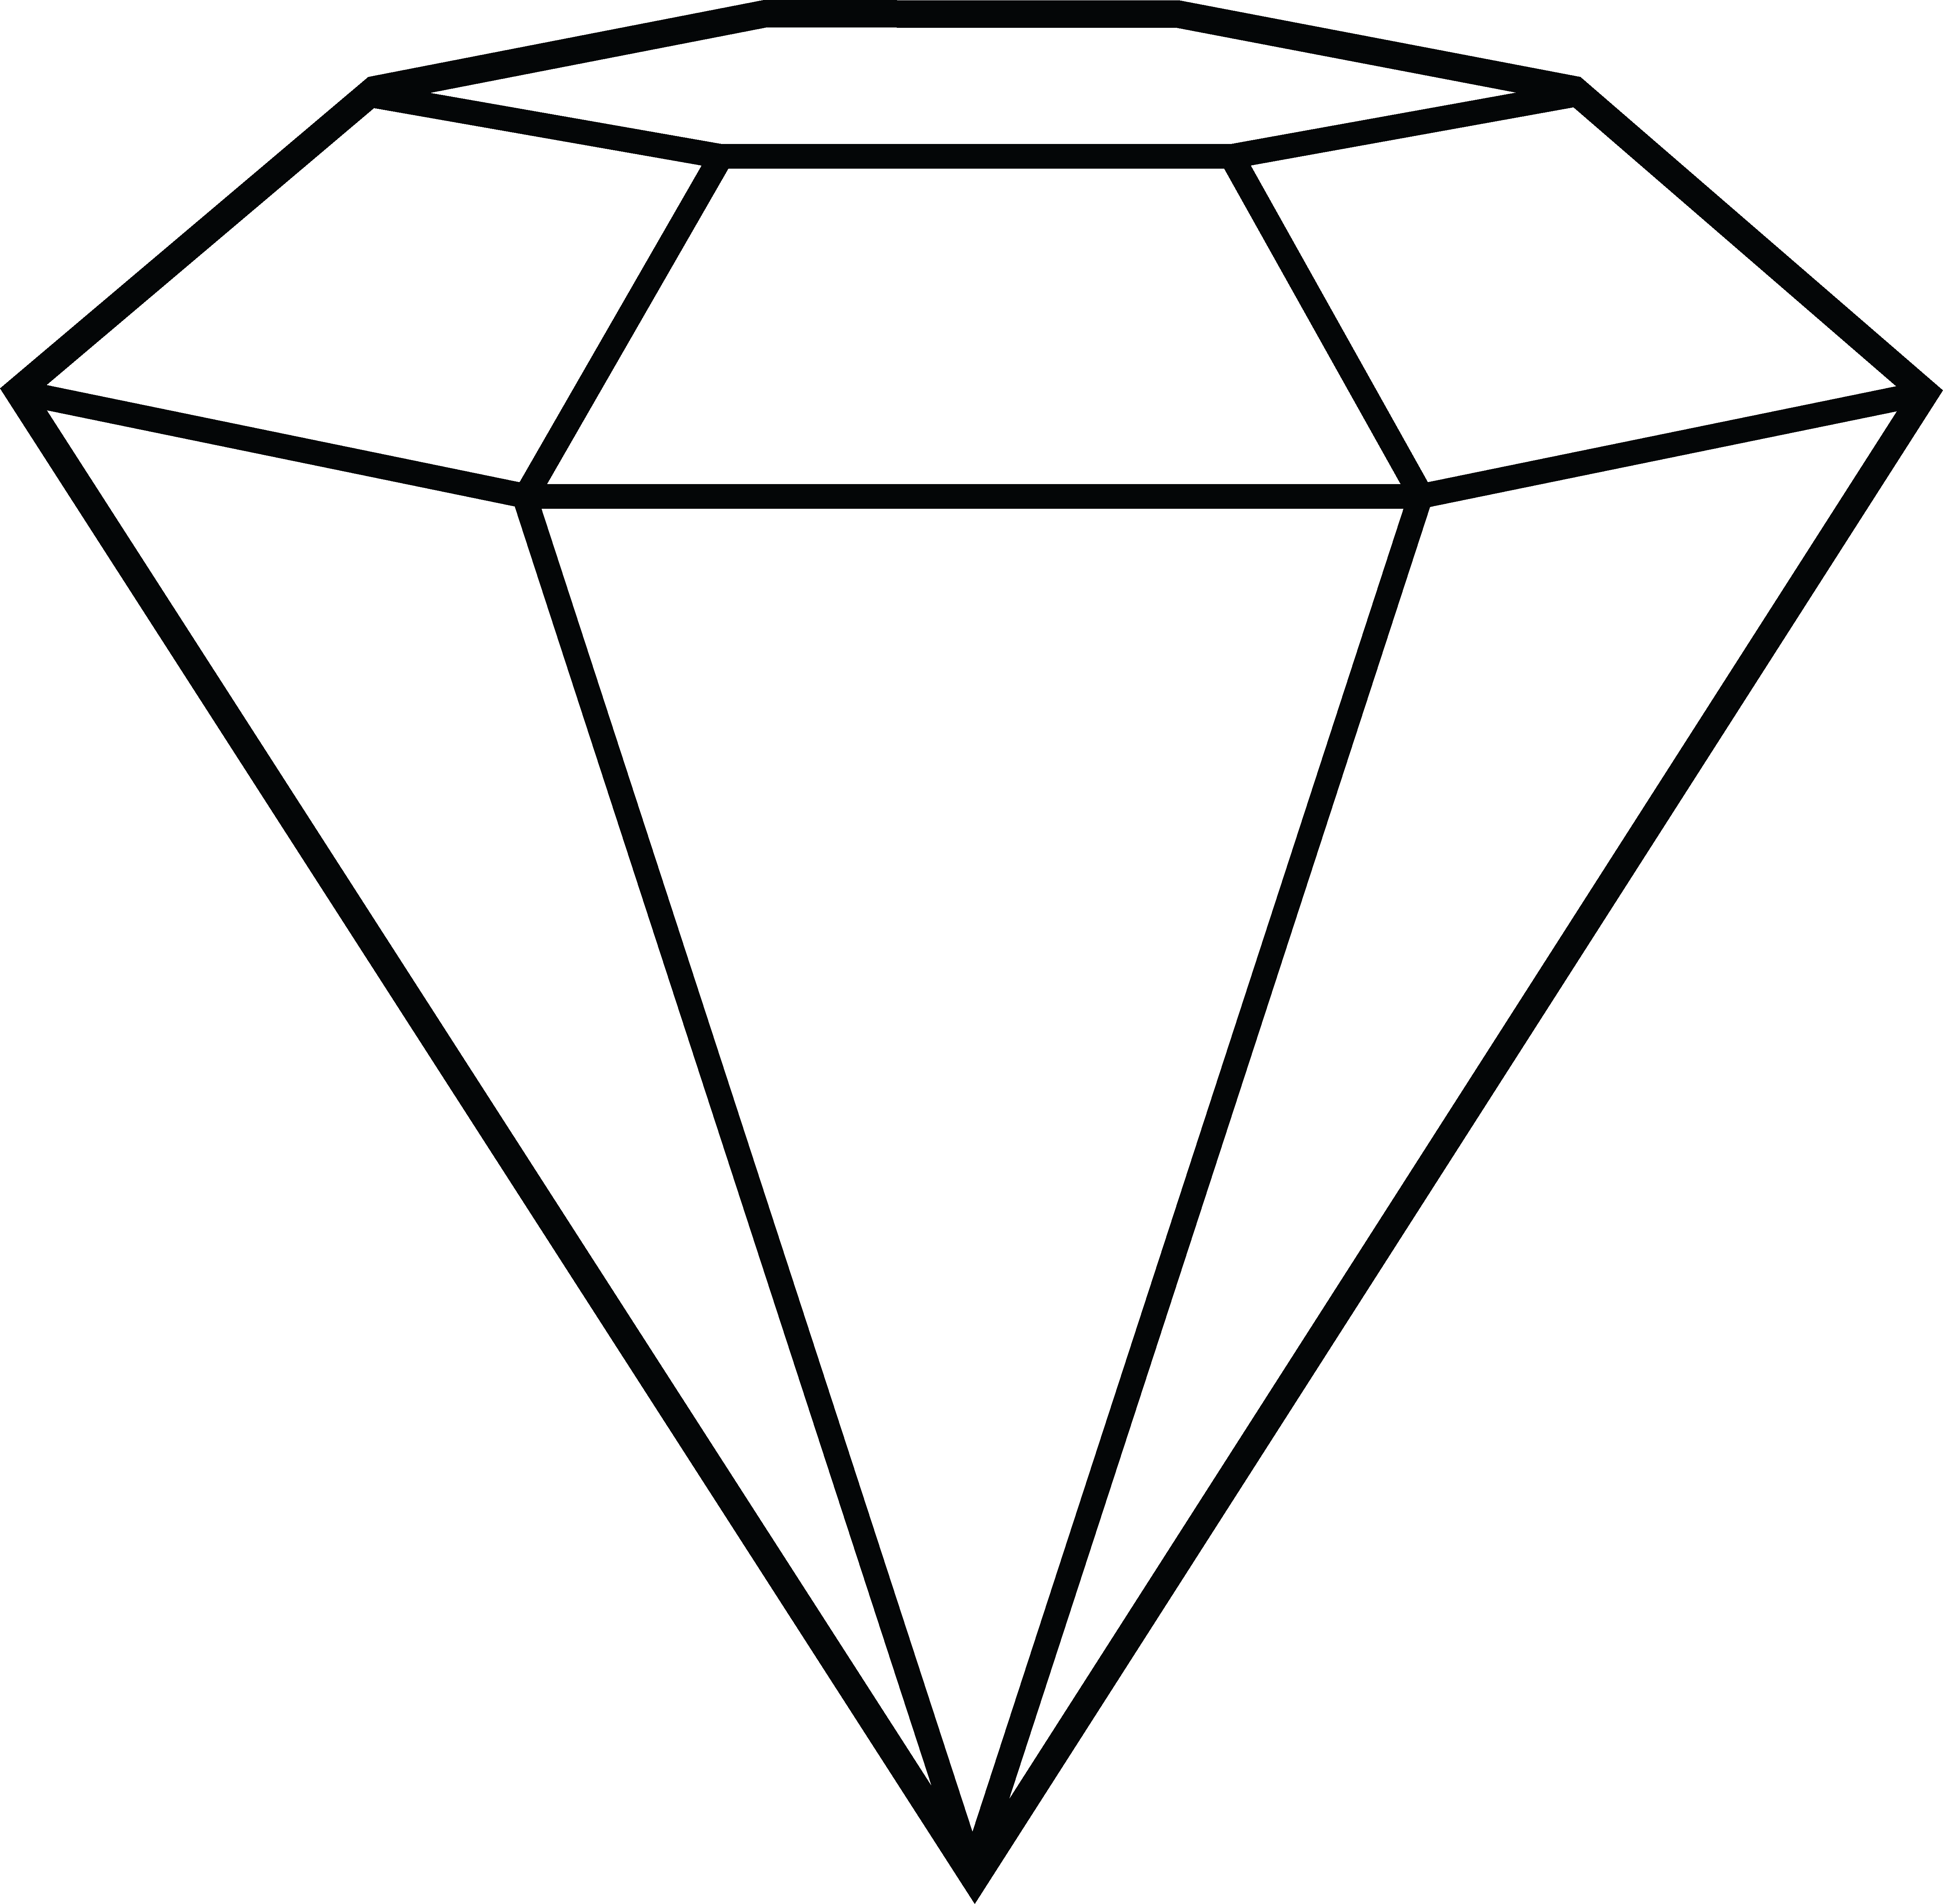 graphic library Lineart graphic design typography. Diamond clipart.